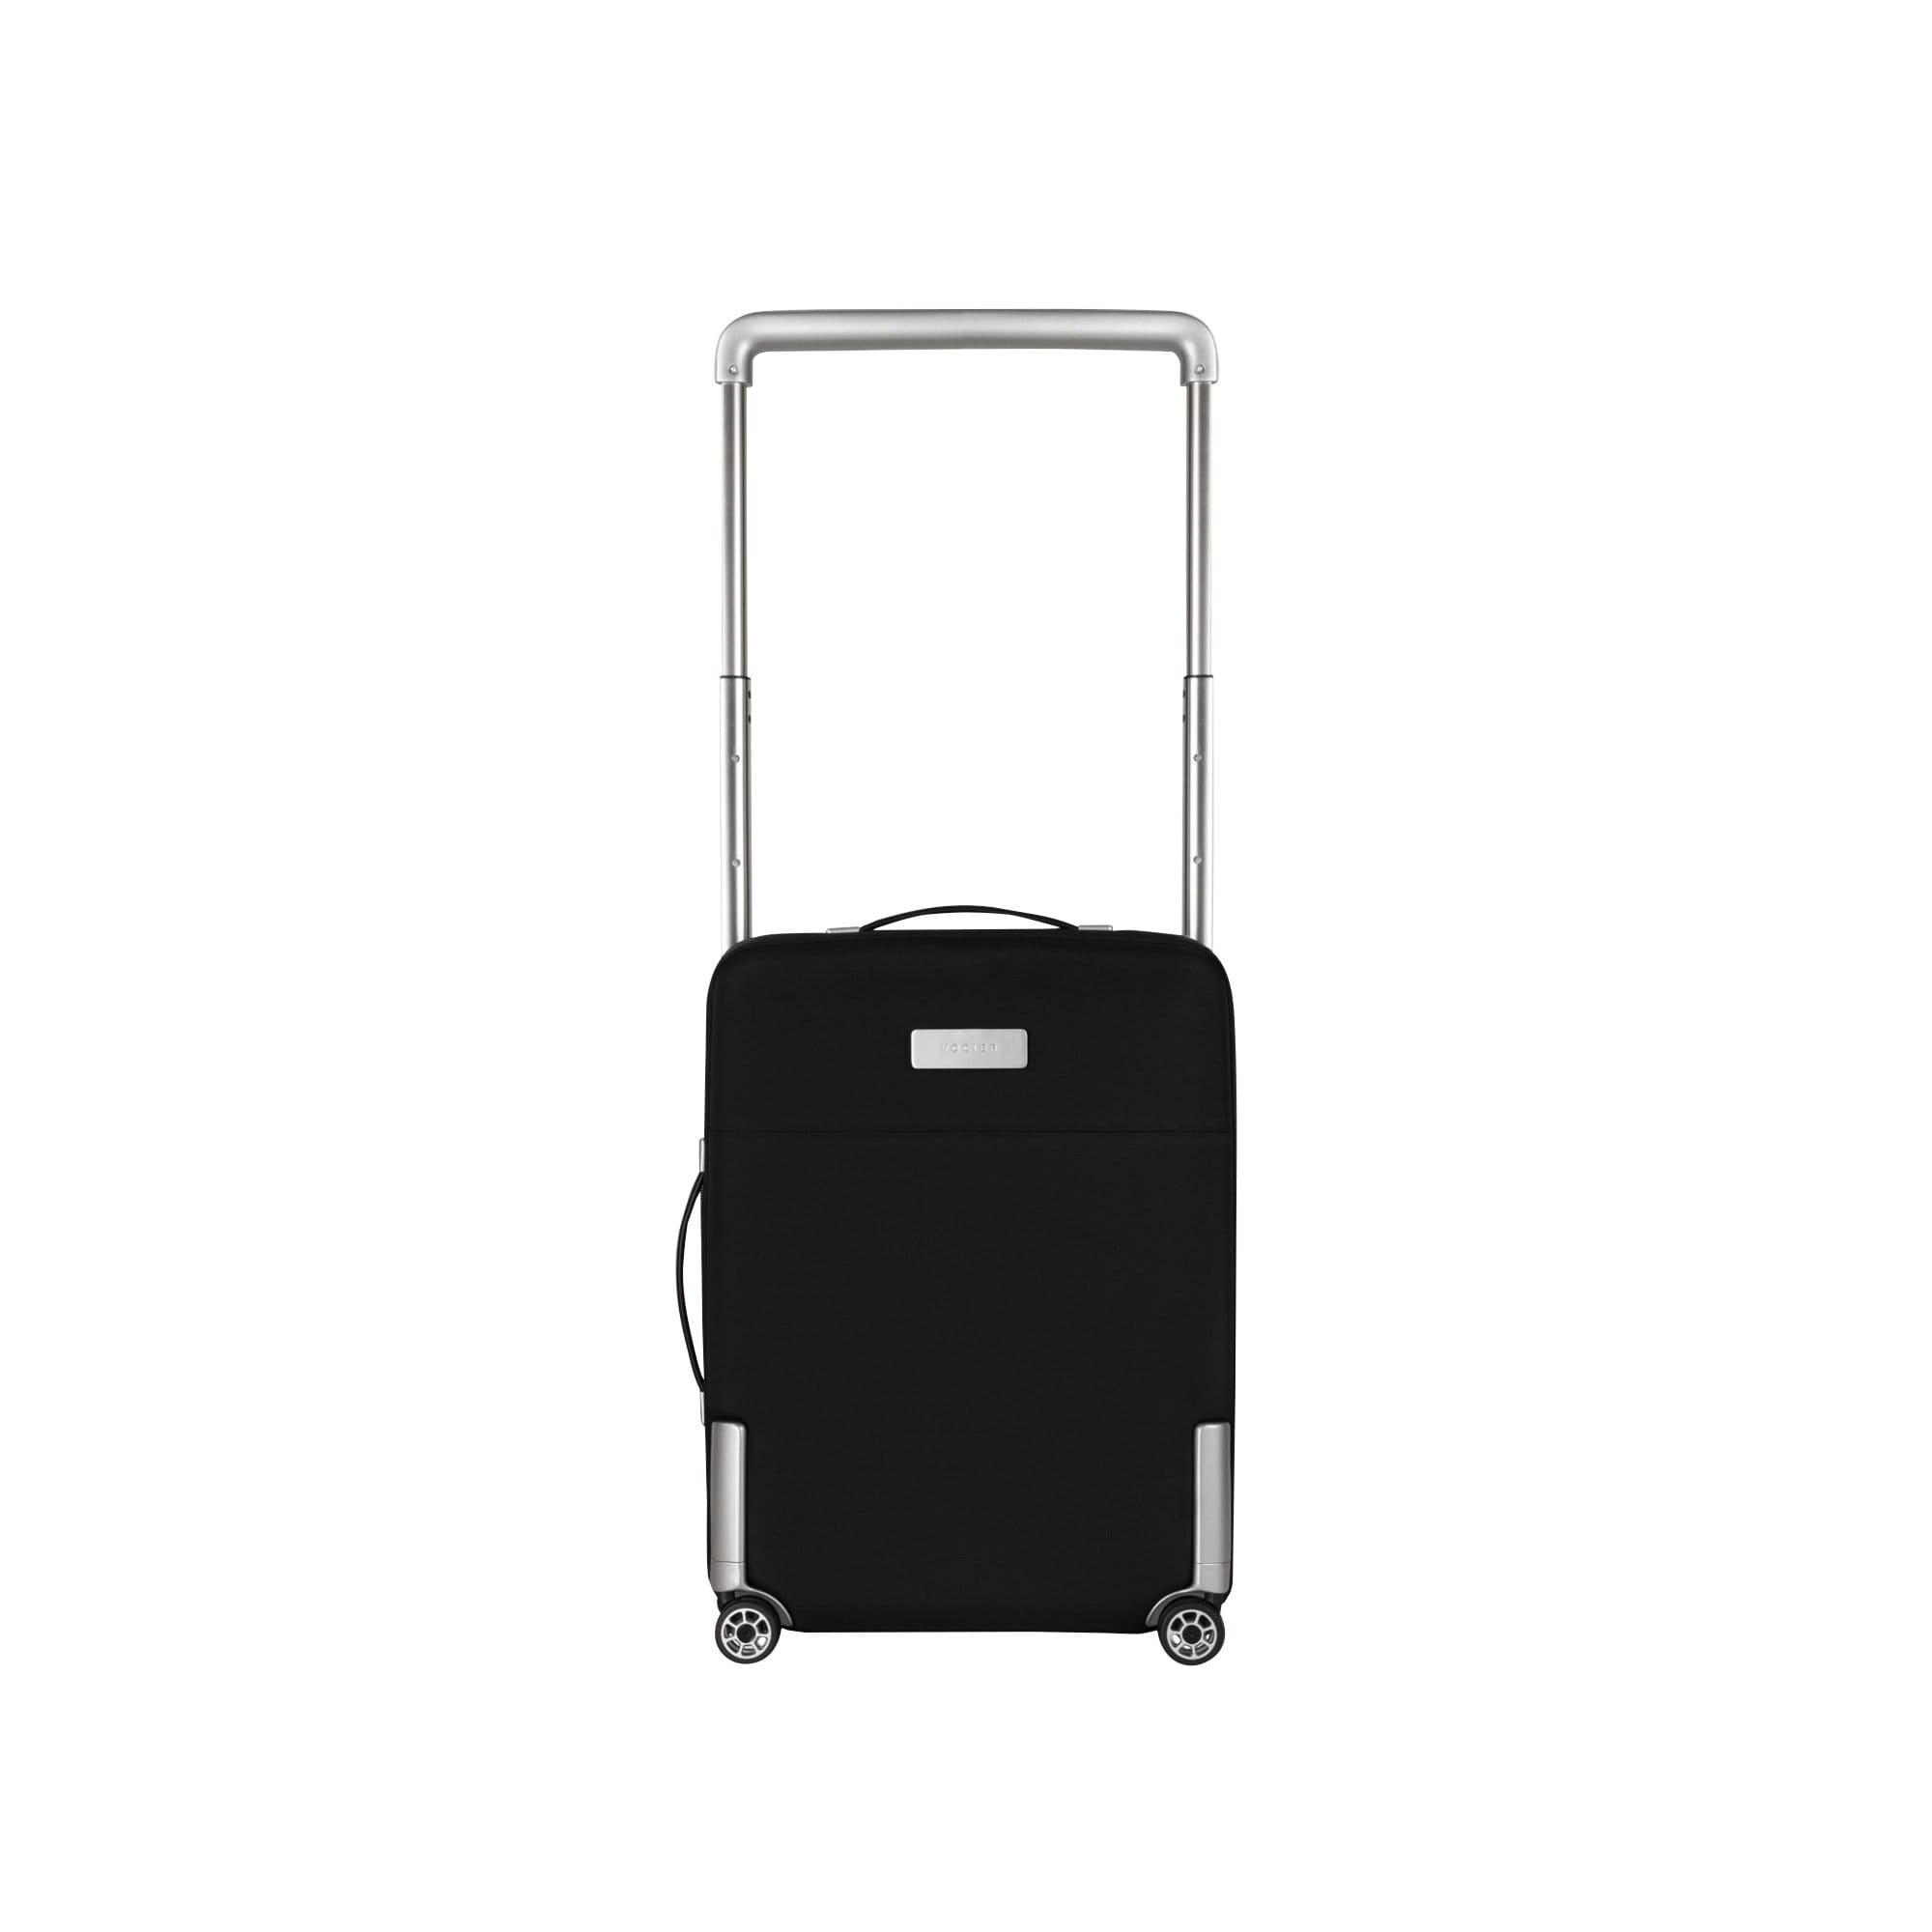 Vocier Luggage Avant Carry-On Luggage